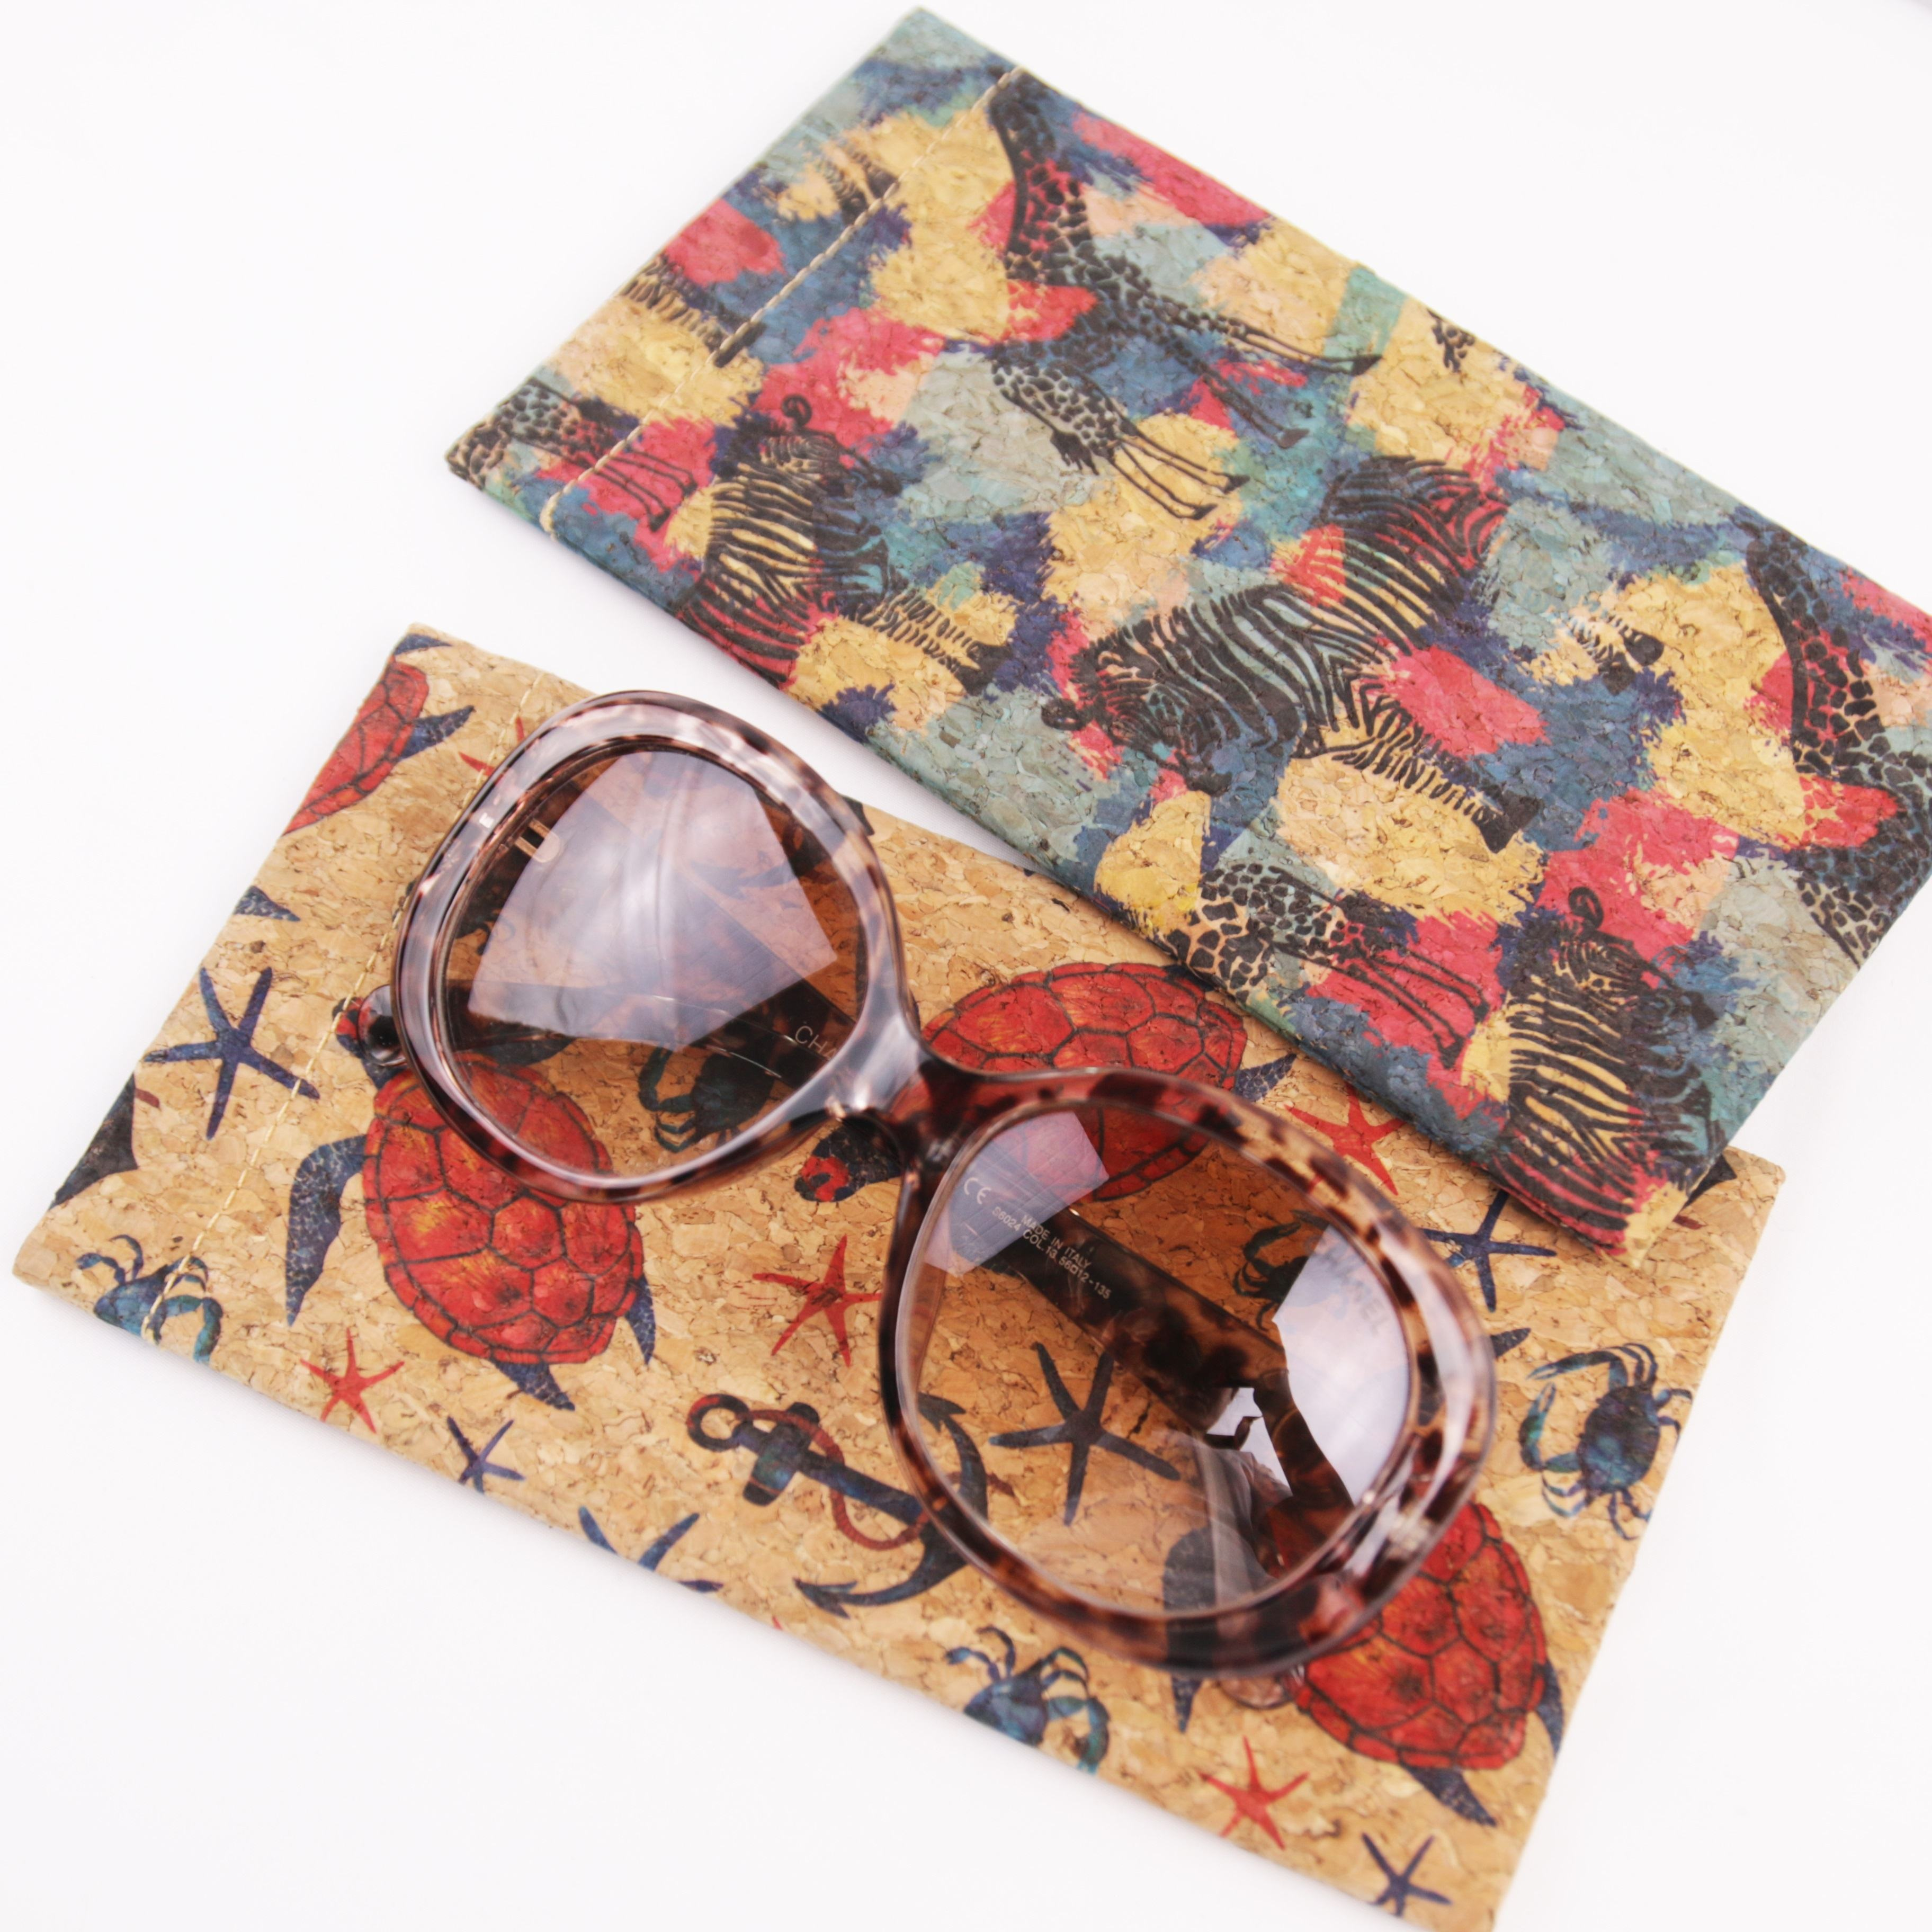 Tropical Print Cork Spectacle Case Wooden Eyewear Box Portugal Cork Sunglasses Cover